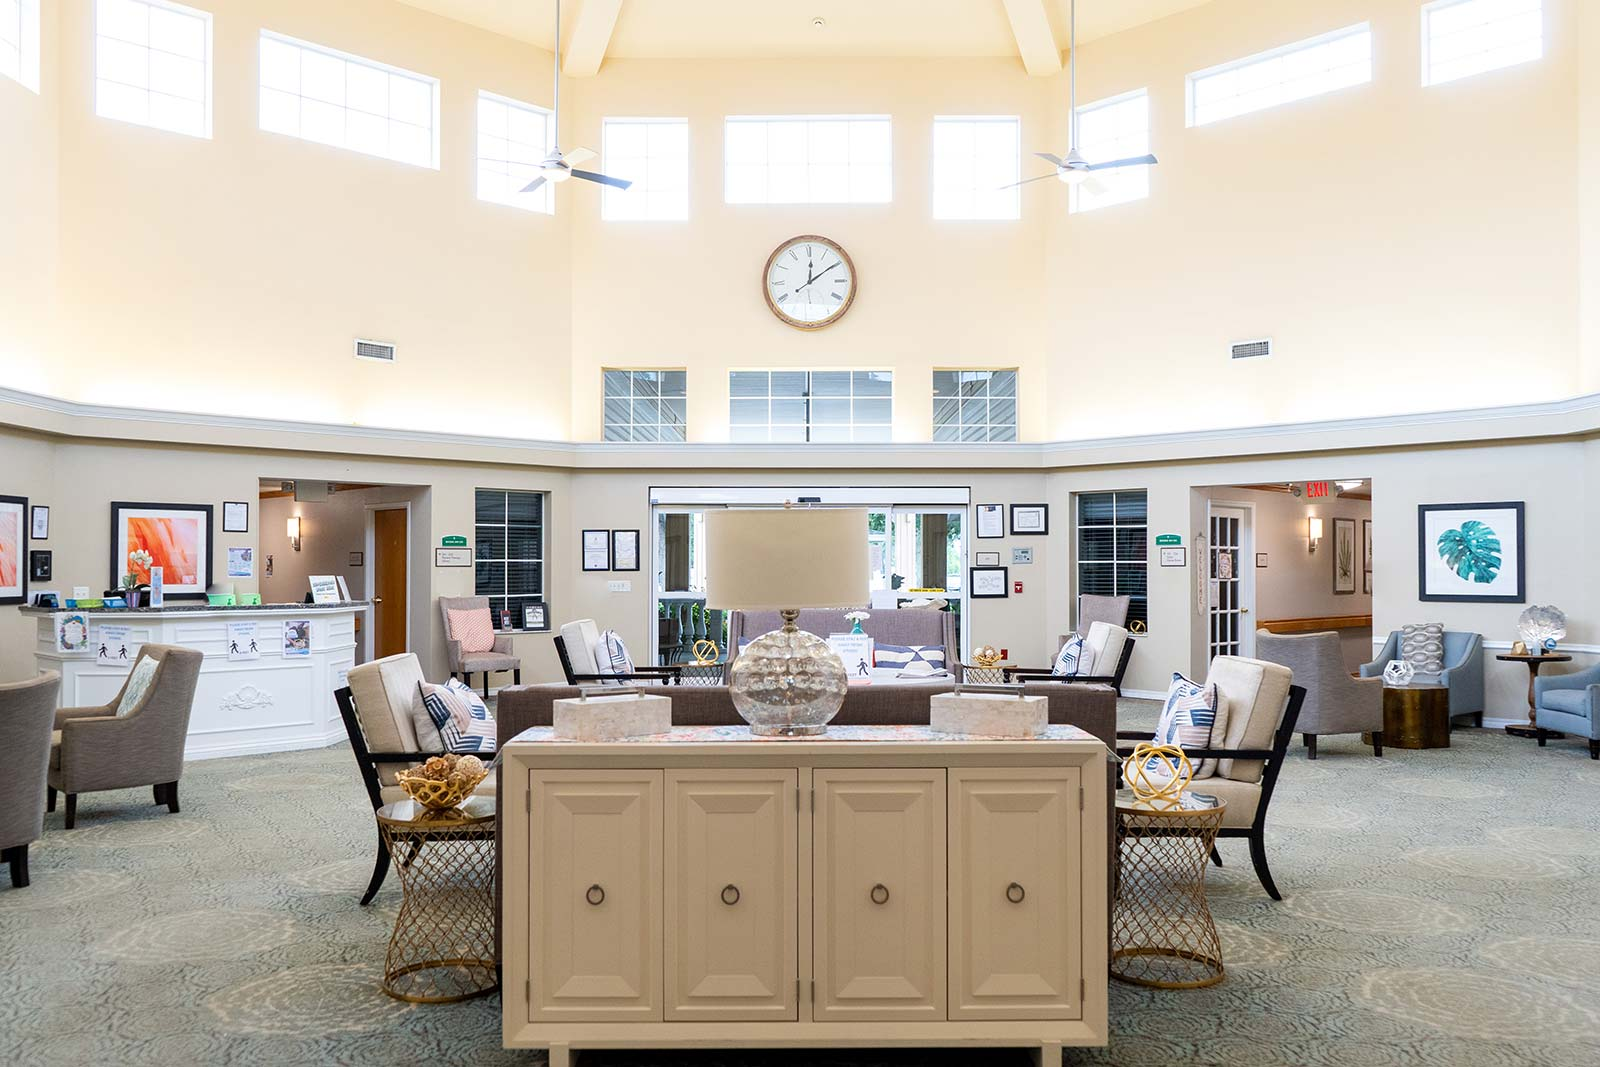 Atrium at Heron House assisted living and memory care community in Sarasota, FL